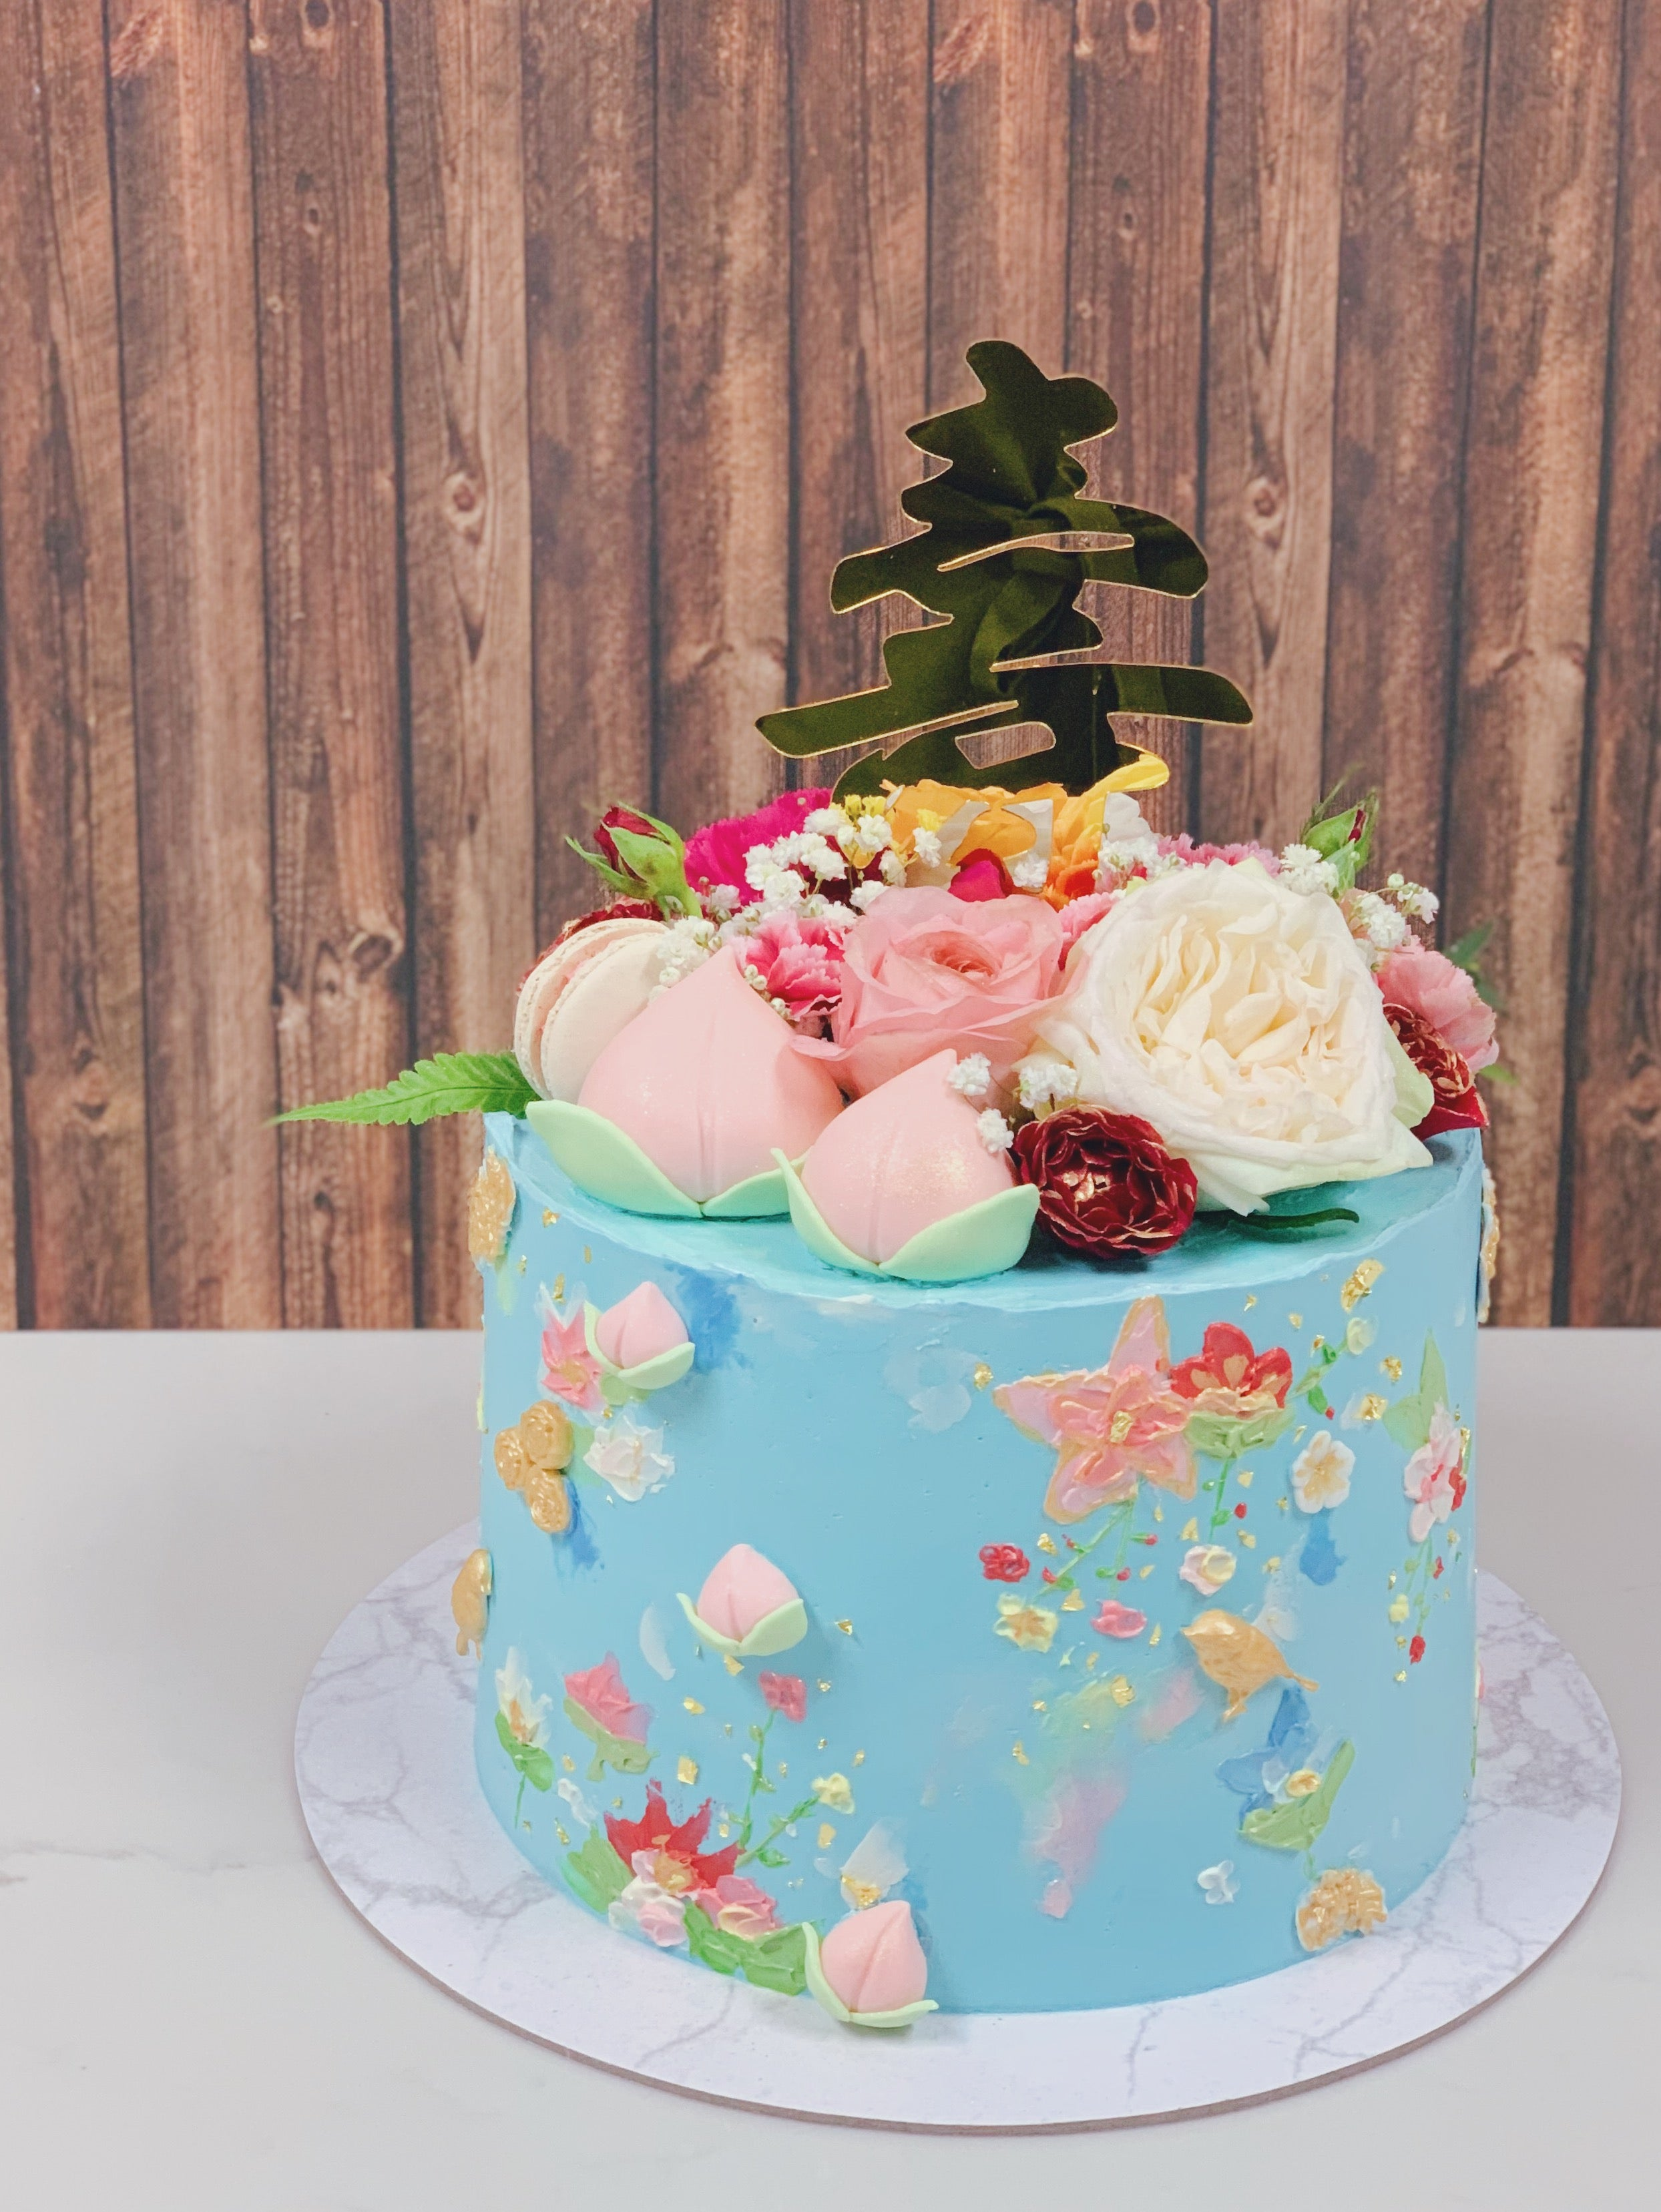 Longevity Handpainted Cake with Florals